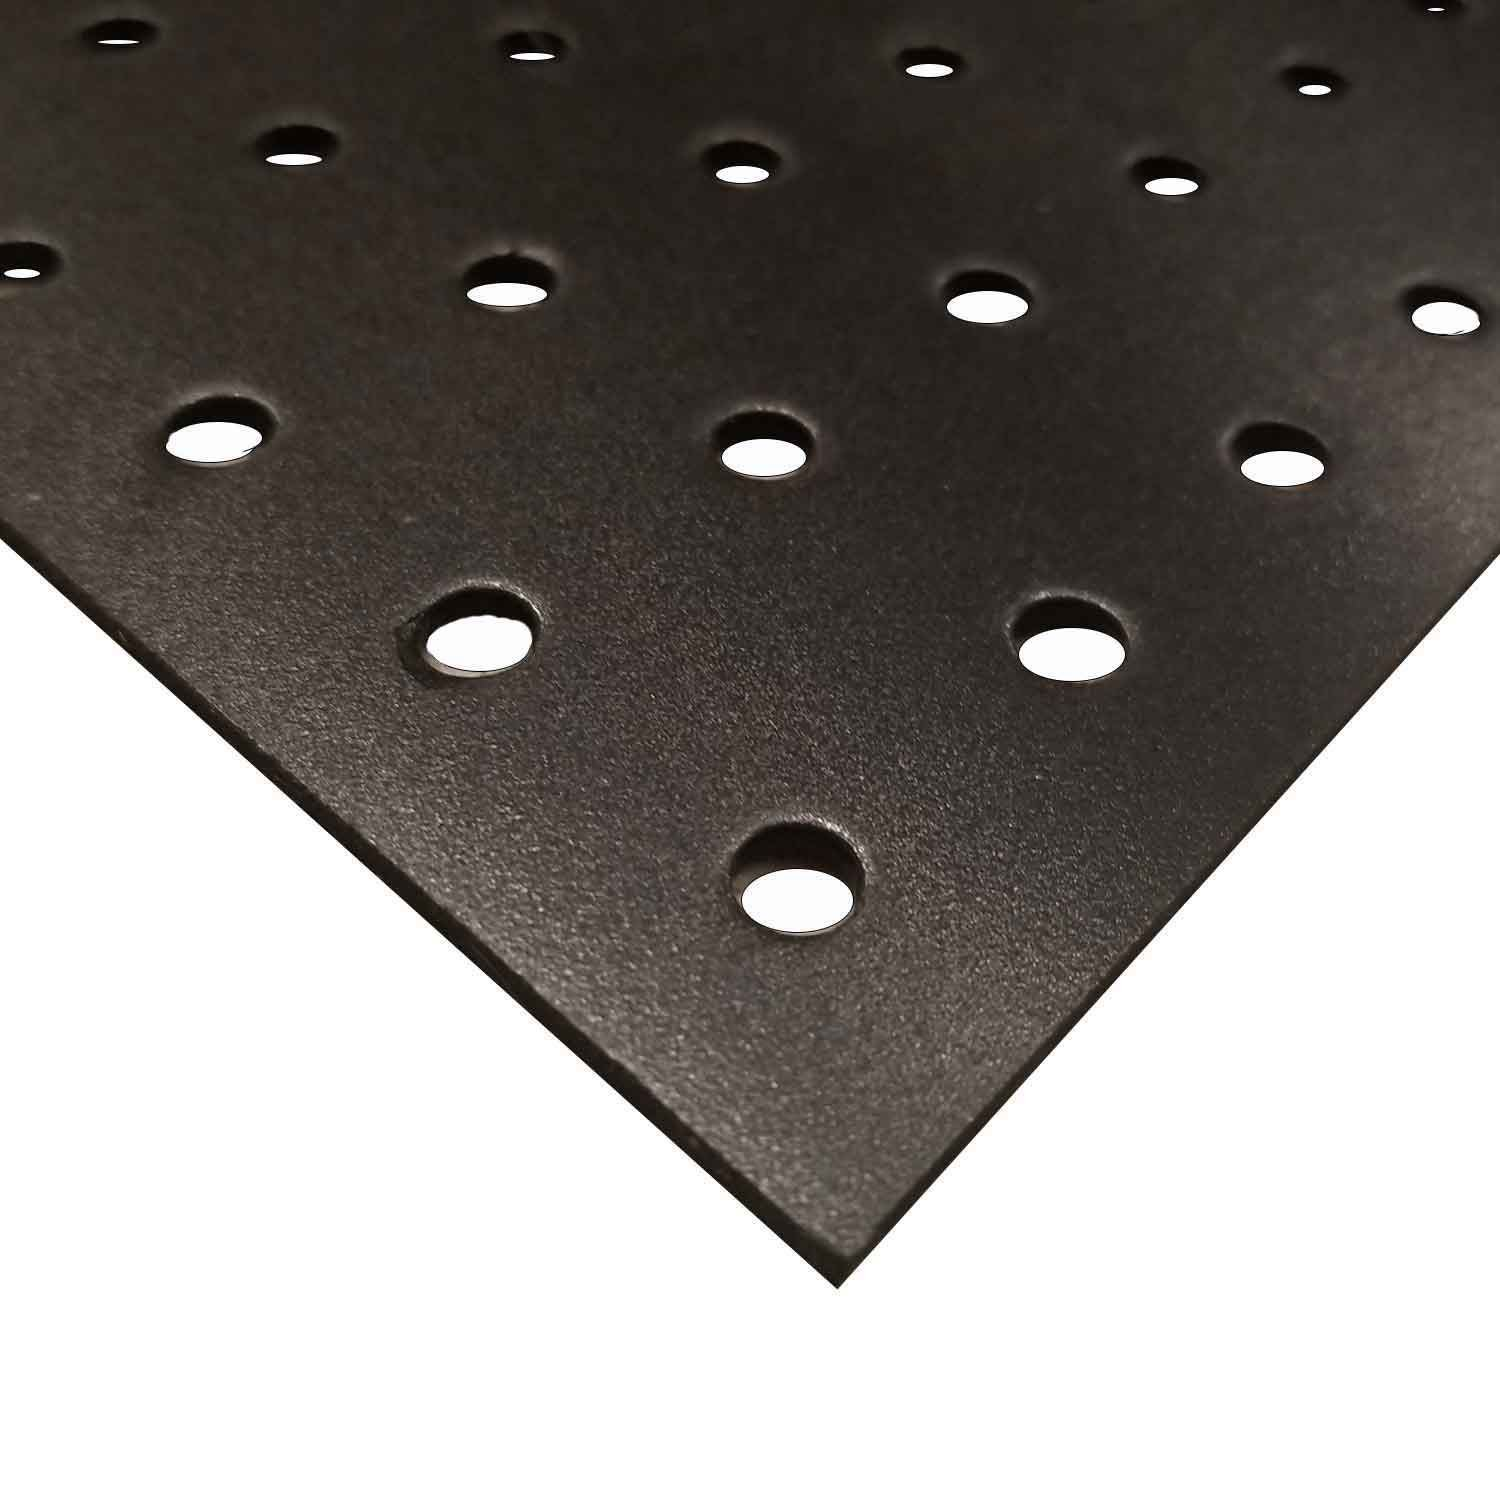 Online Plastic Supply Black Perforated PVC Expanded Sheet 1/8'' (3mm) x 24'' x 48'' (1/4'' Holes)